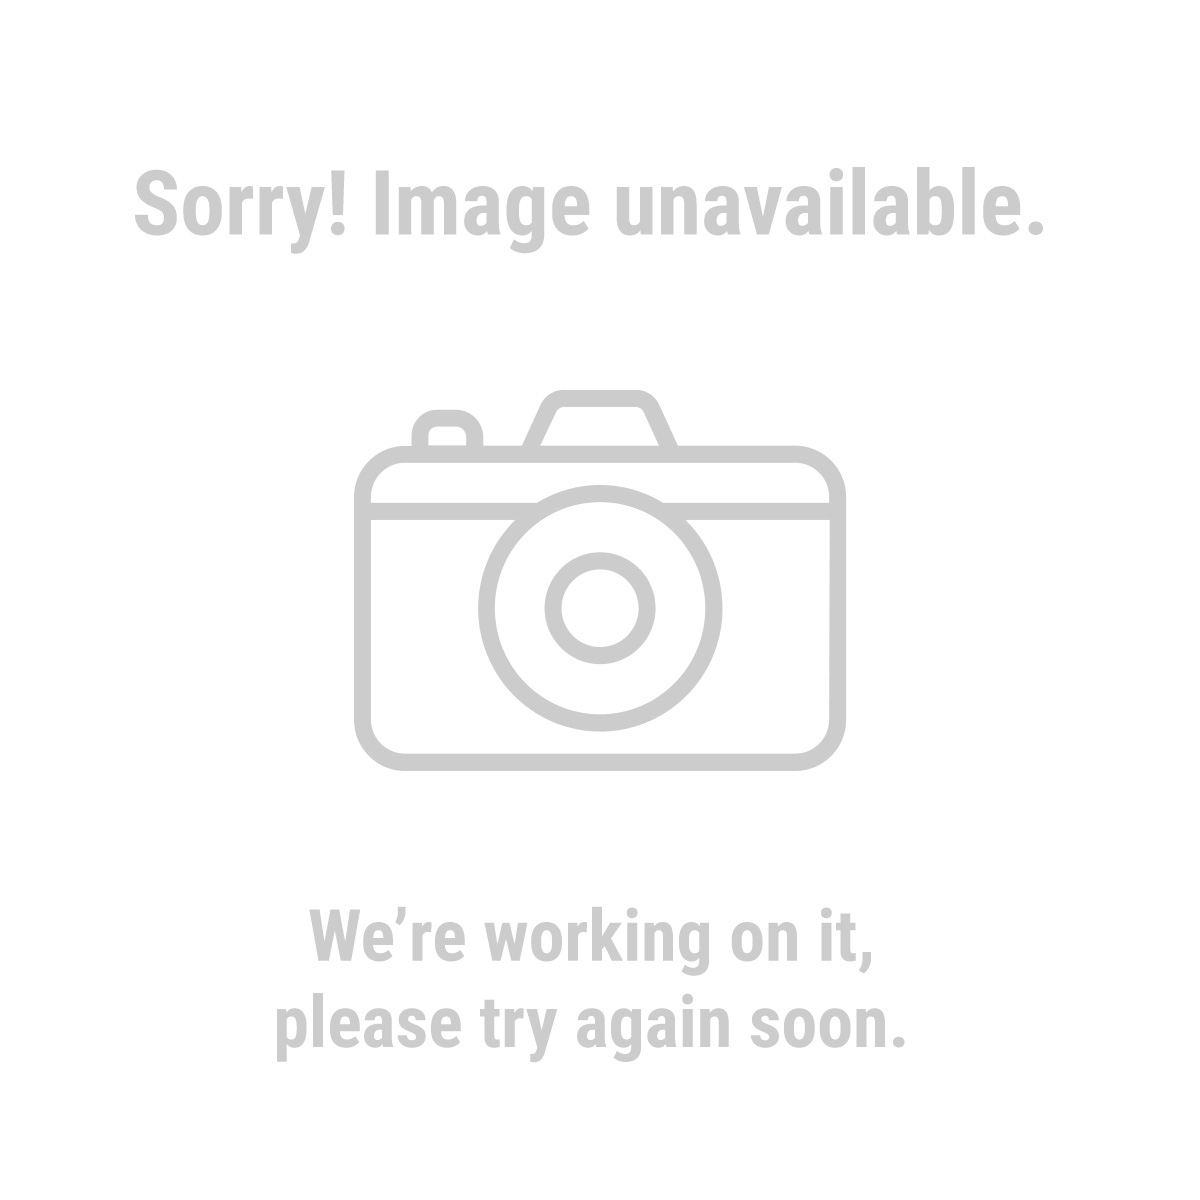 IRON ARMOR 60774 16 oz. Iron Armor® Black Rubberized Undercoating Spray Paint